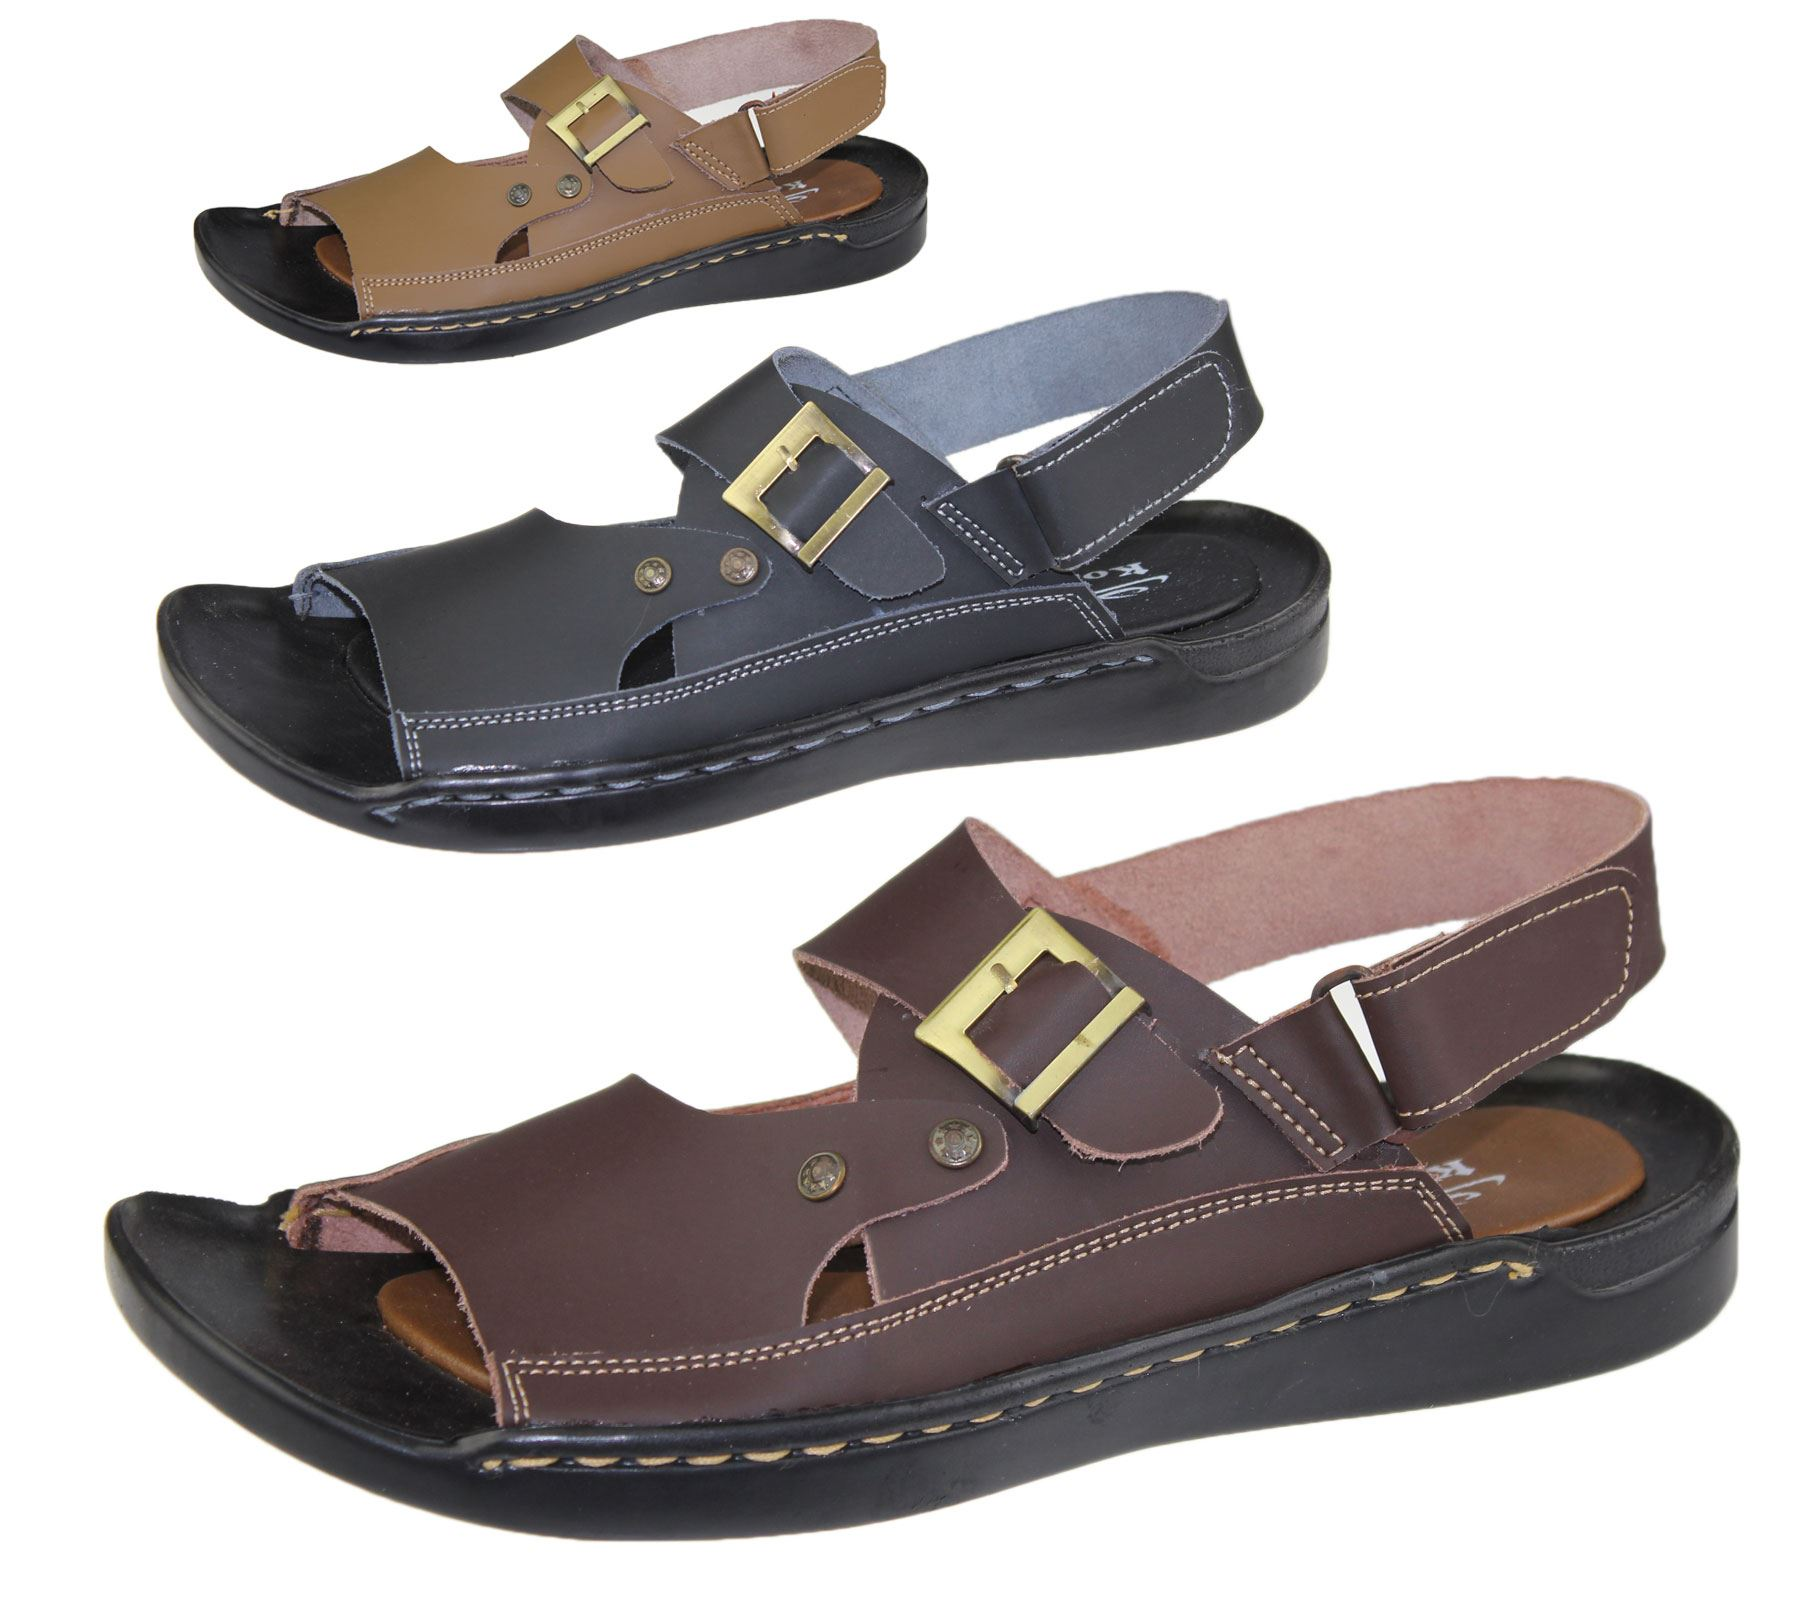 MEN New Easy Fastening Air Foot Comfort Beach//Holiday Sandal UK Size 6-11